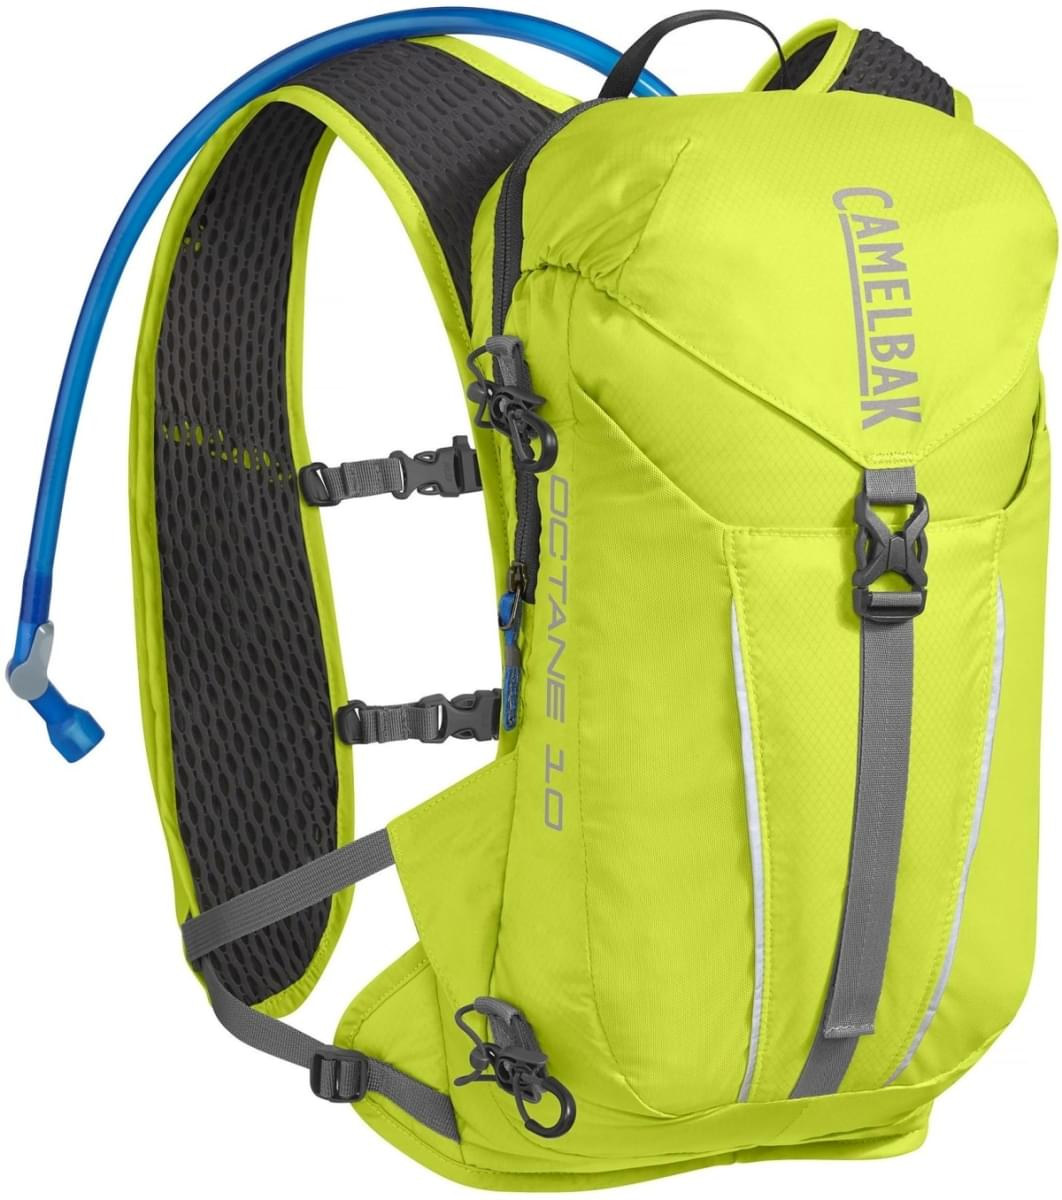 Camelbak Octane 10 - Lime Punch/Black uni